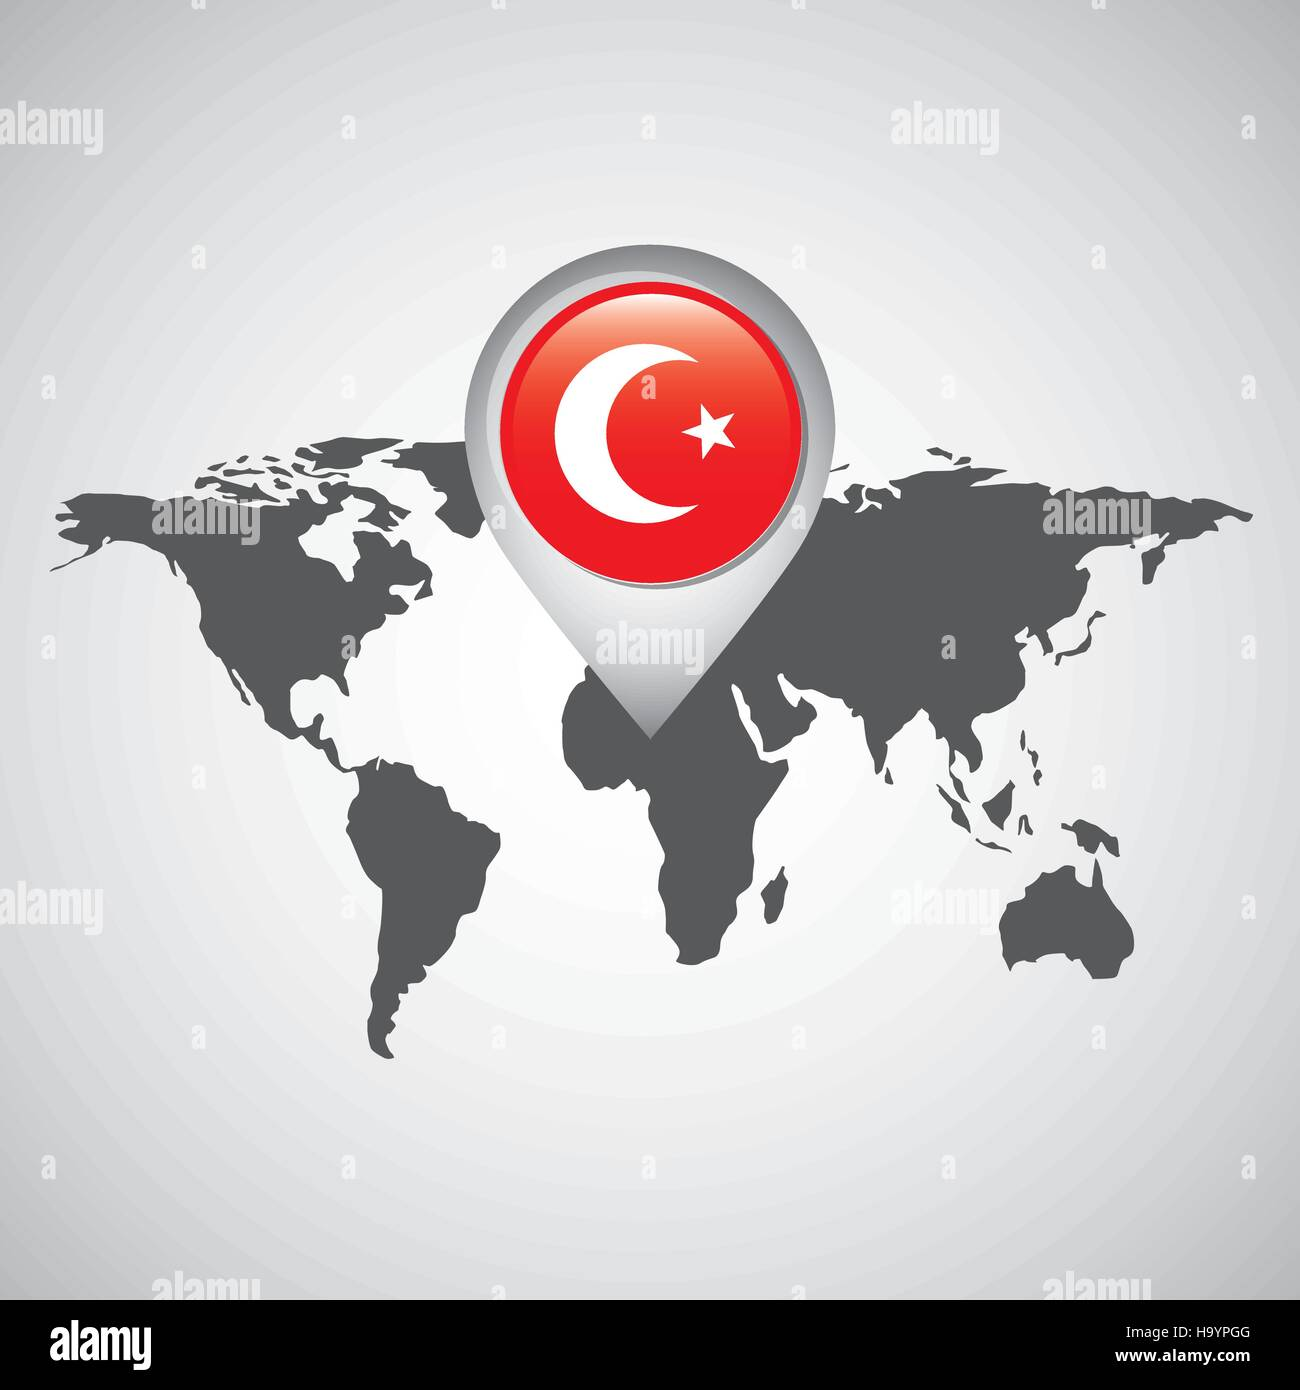 World map with pointer flag turkey vector illustration eps 10 stock world map with pointer flag turkey vector illustration eps 10 gumiabroncs Gallery